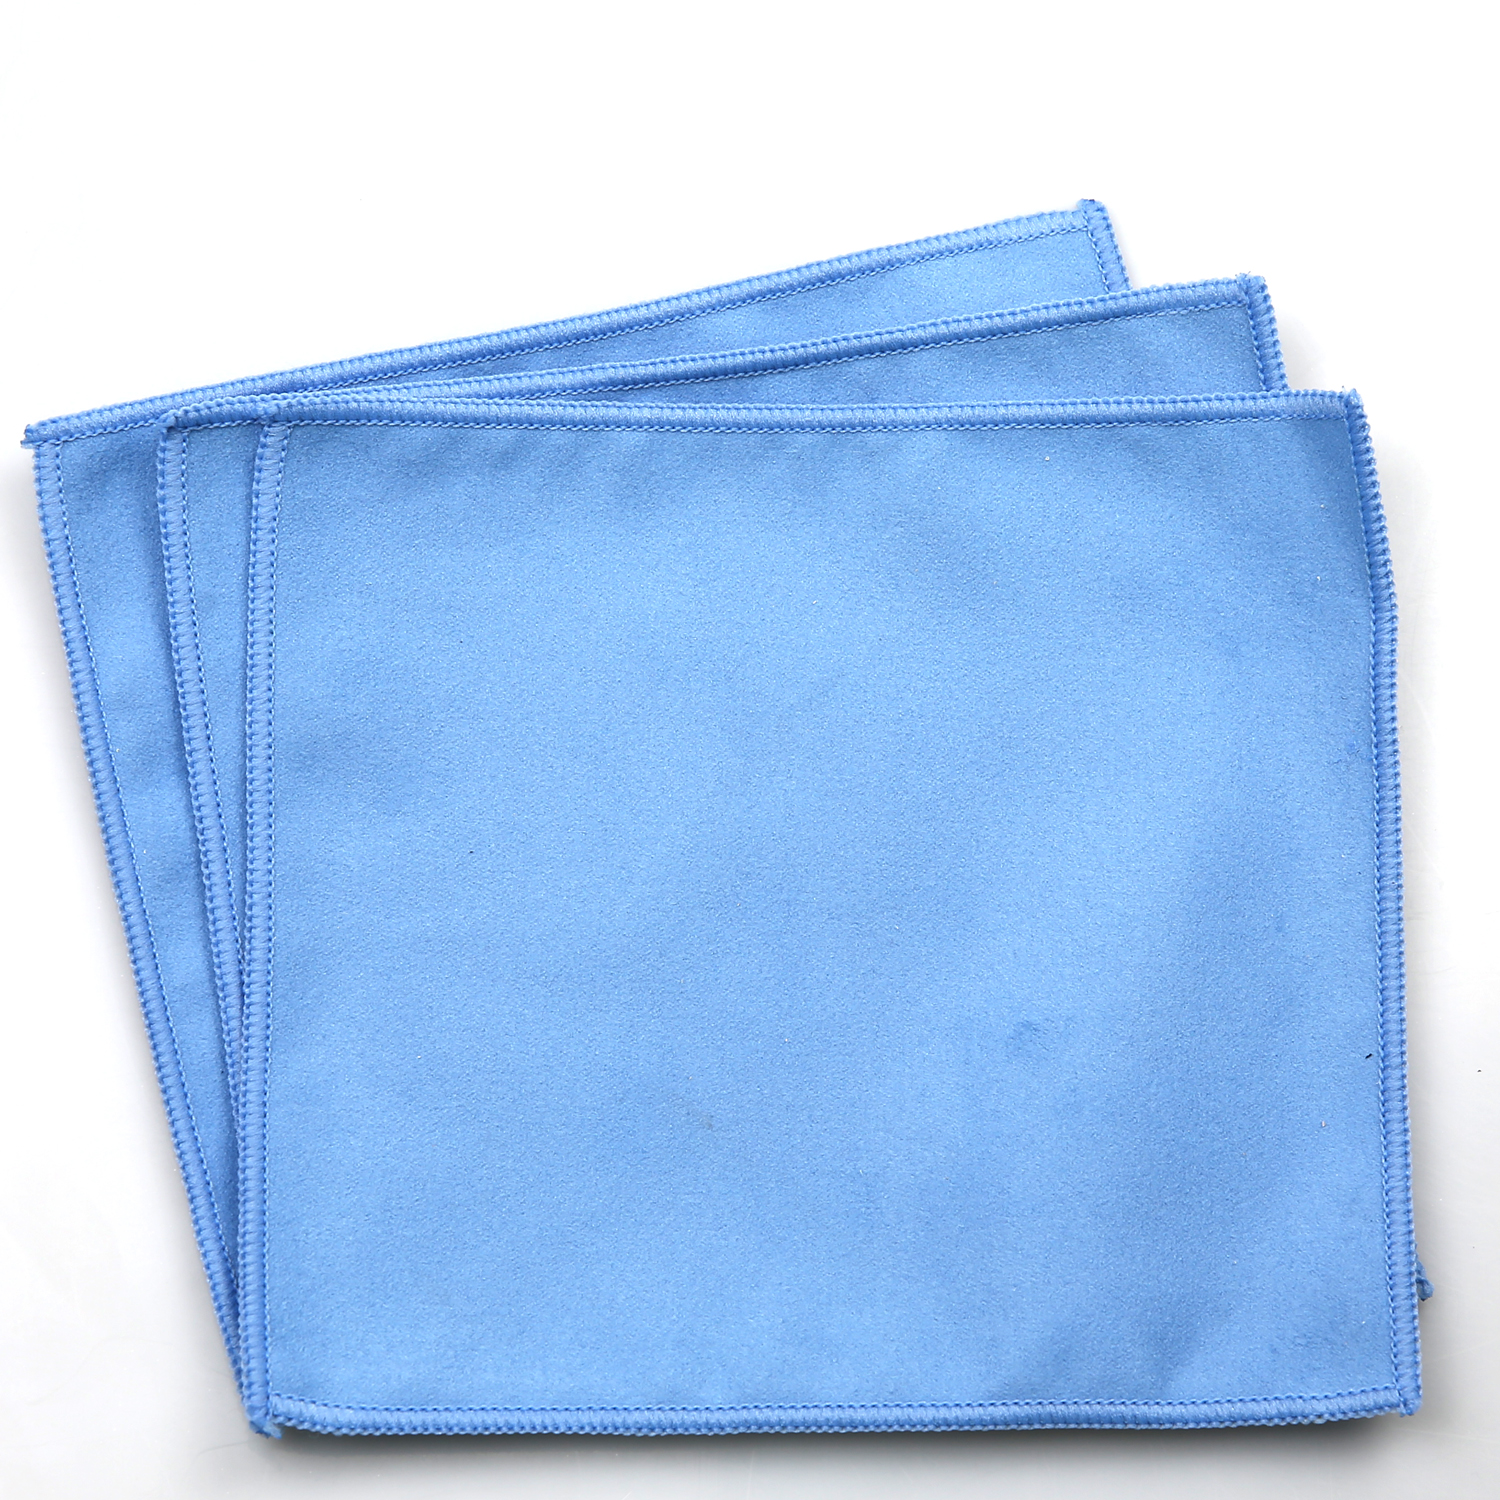 Cleaning cloth for screen mobile phones  Custom eyeglass cleaner cloth  Instrument guitar cleaning cloth